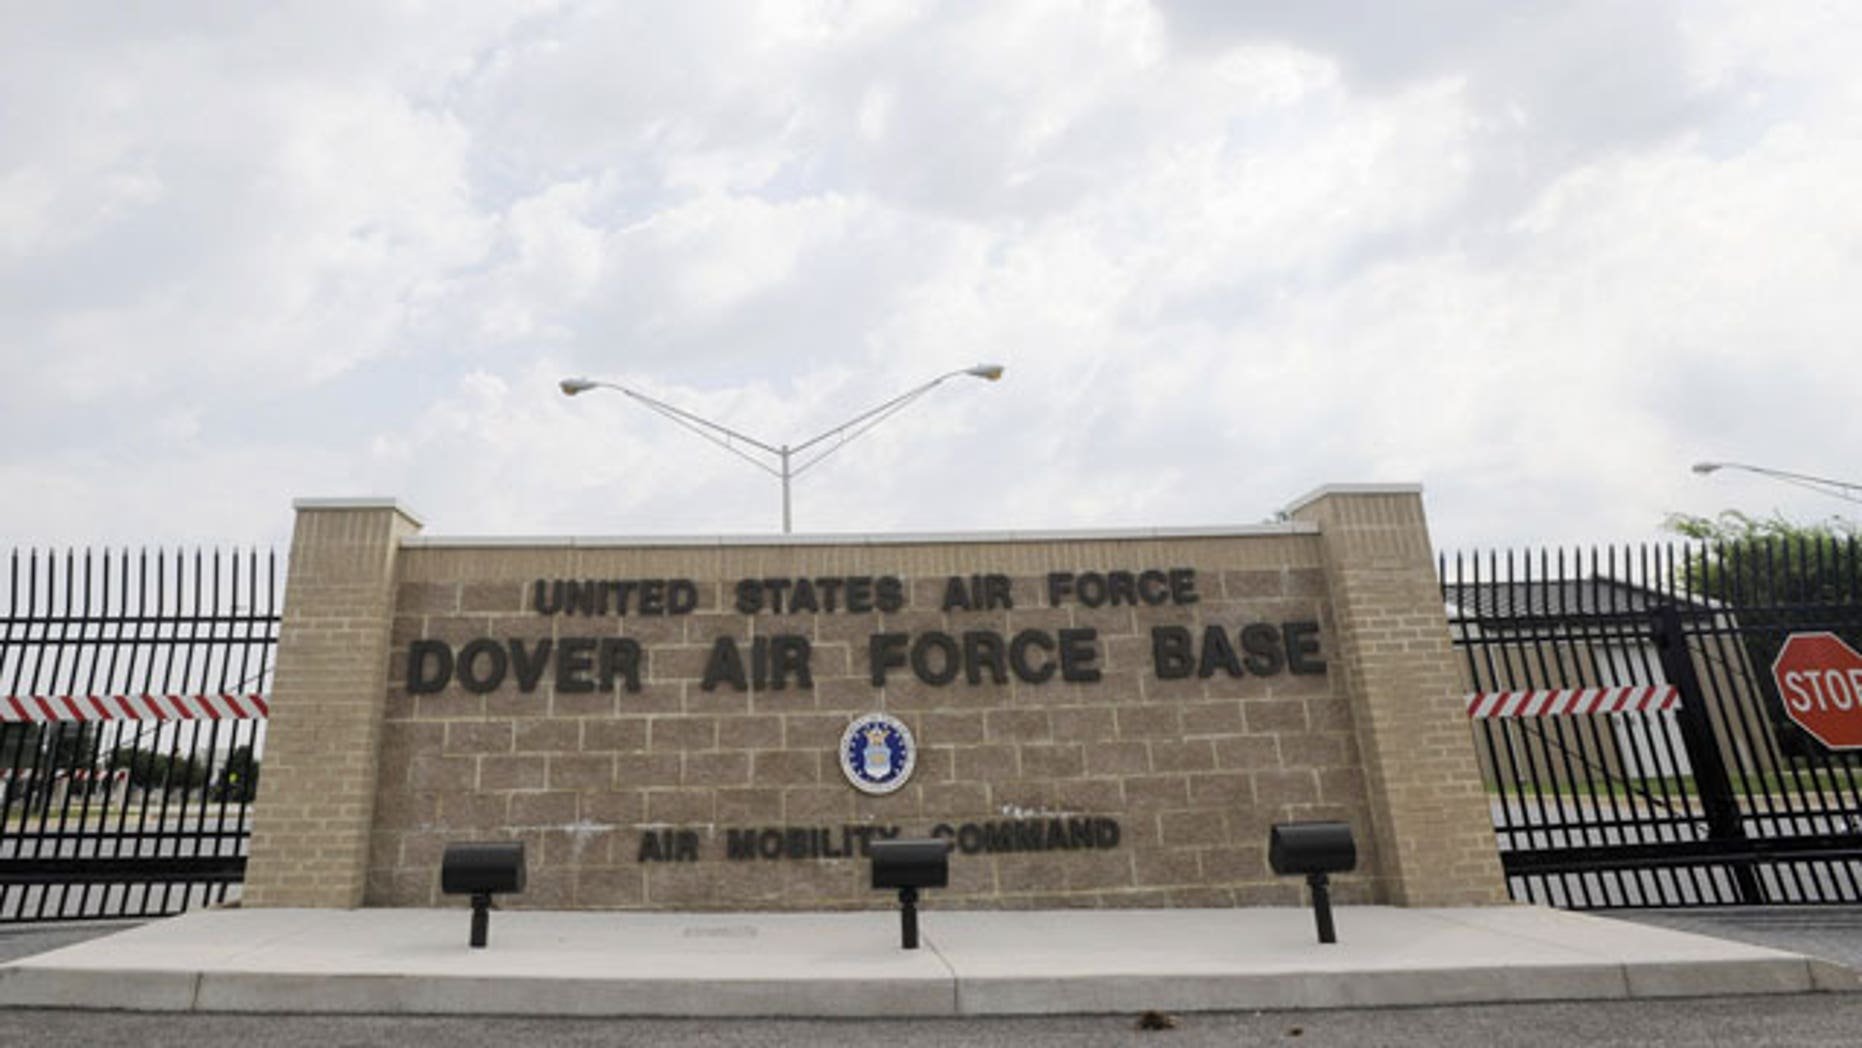 This Aug. 9, 2011, shows the closed gates at Dover Air Force Base, Del. The Pentagon revealed on Tuesday that some partial, incinerated remains of 9/11 victims that could not be identified were sent to a landfill.